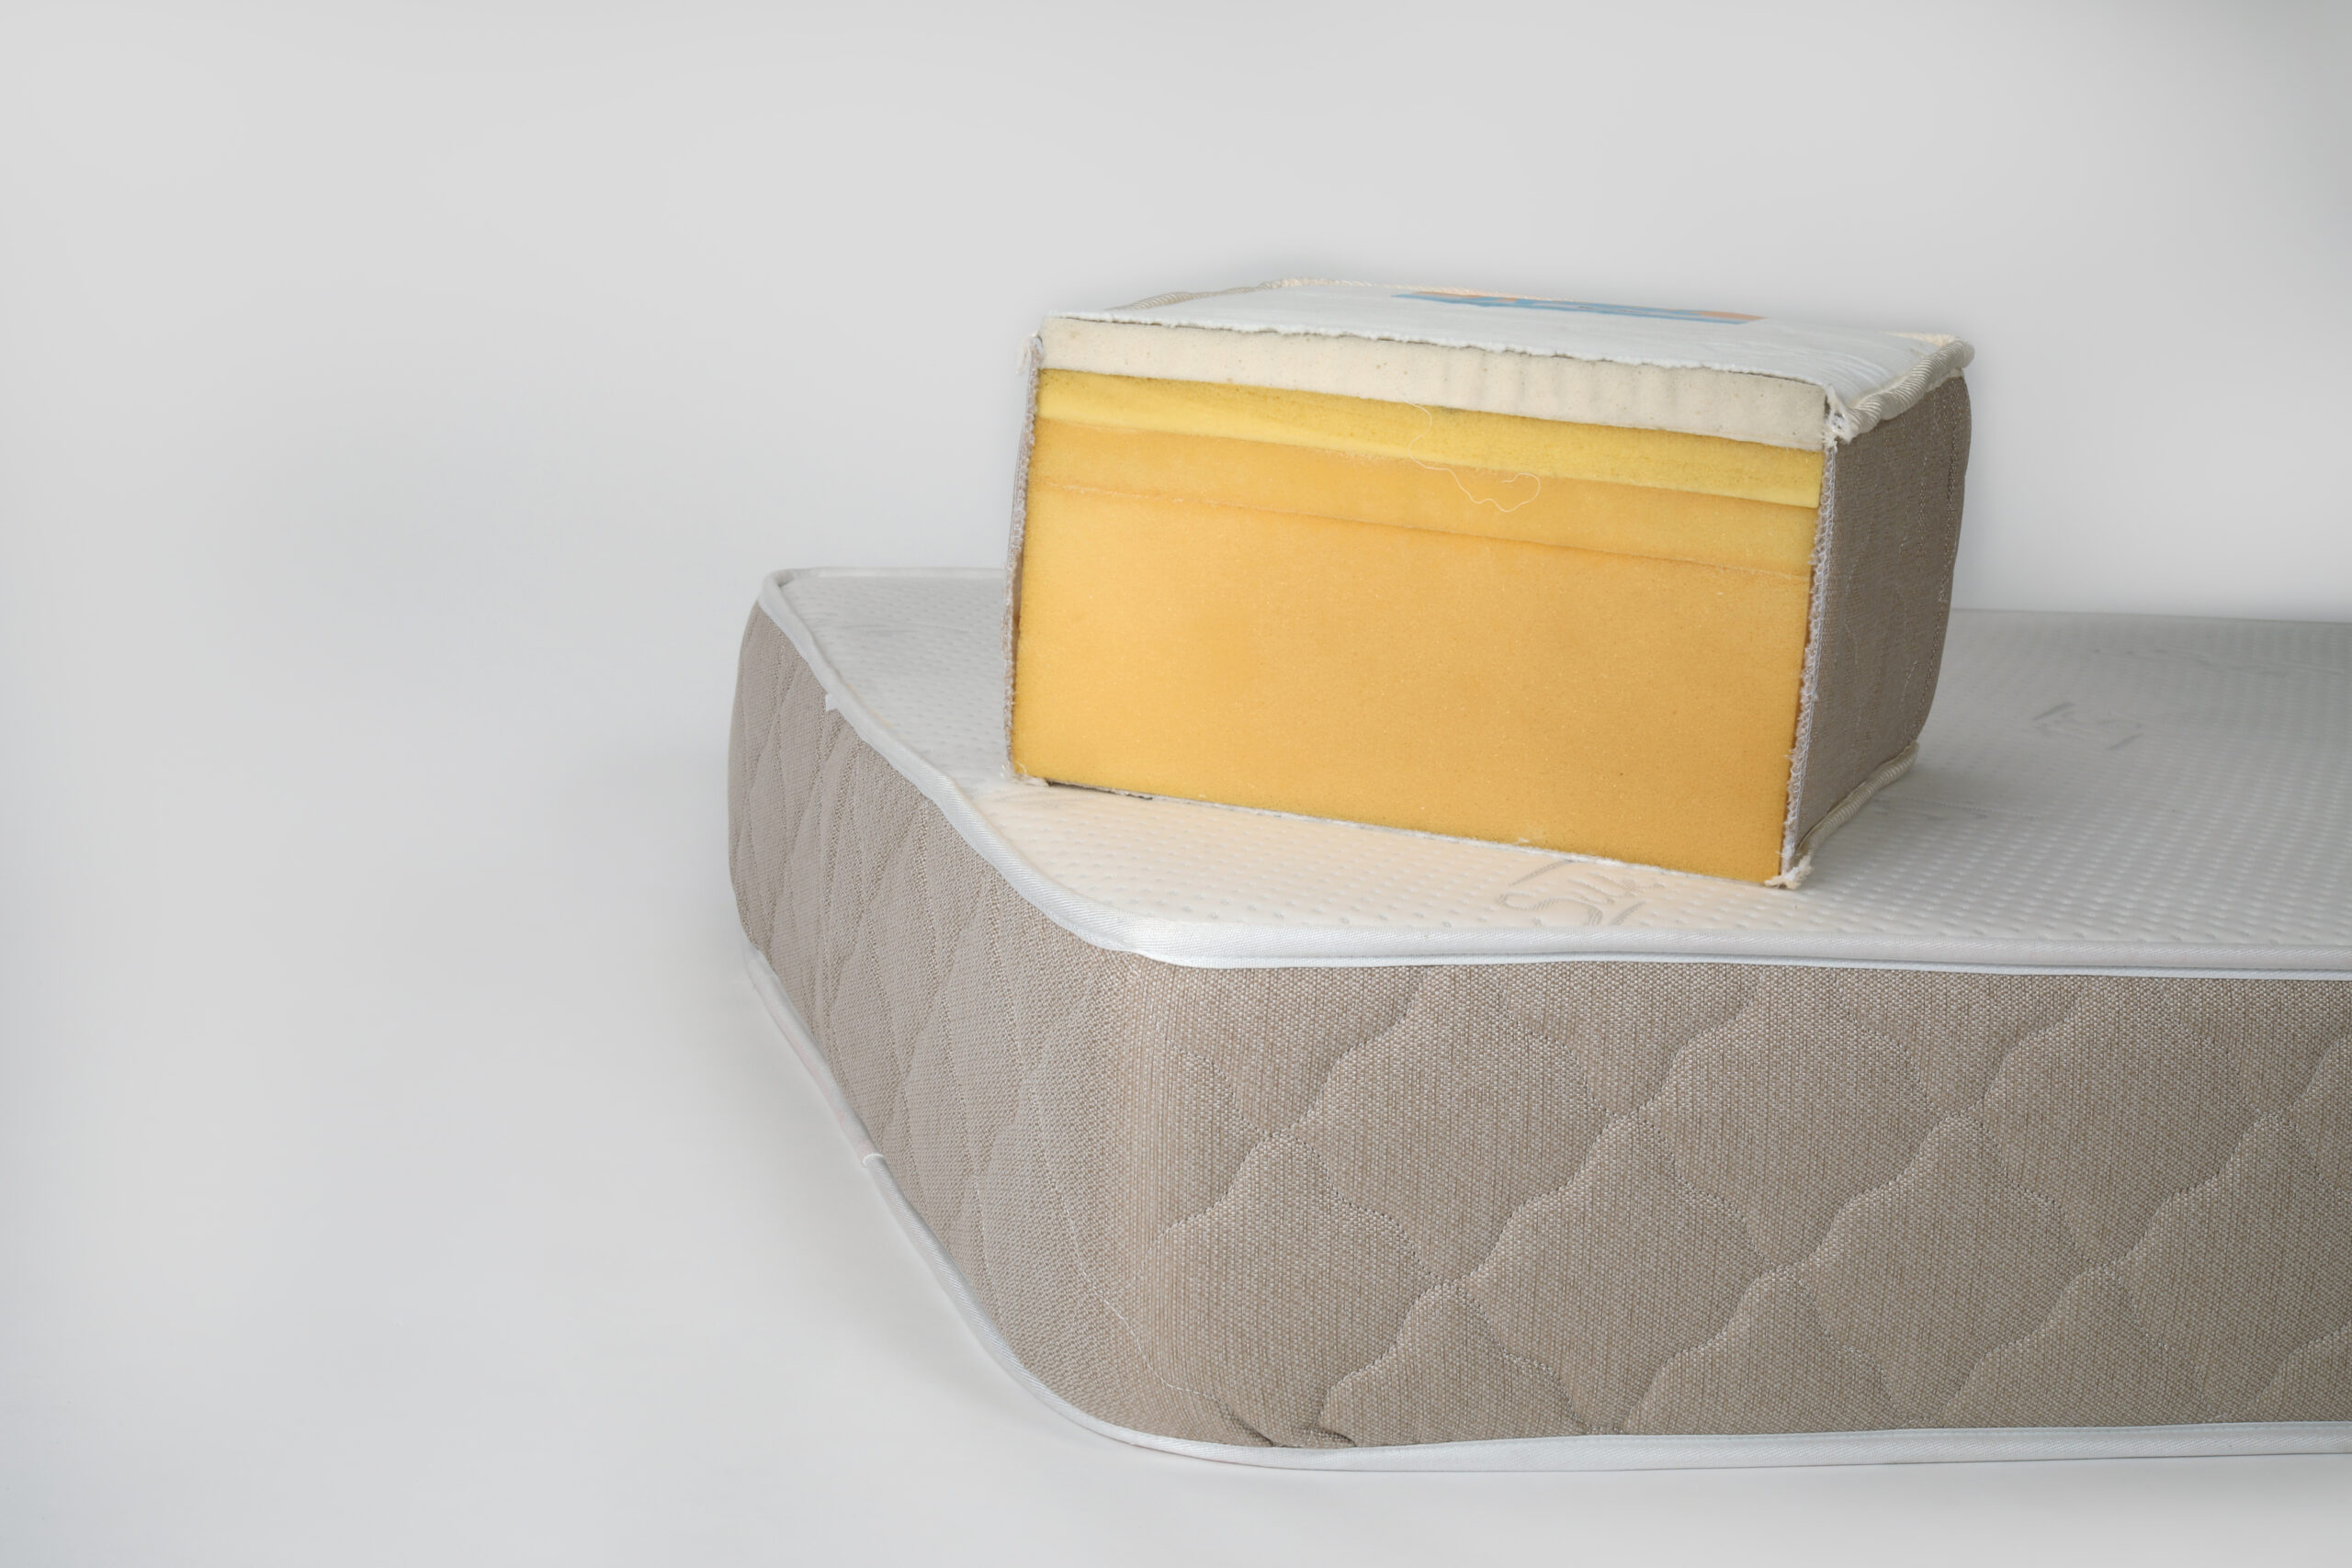 Platinum memory foam mattress by NAM House of sleep (picture 2)